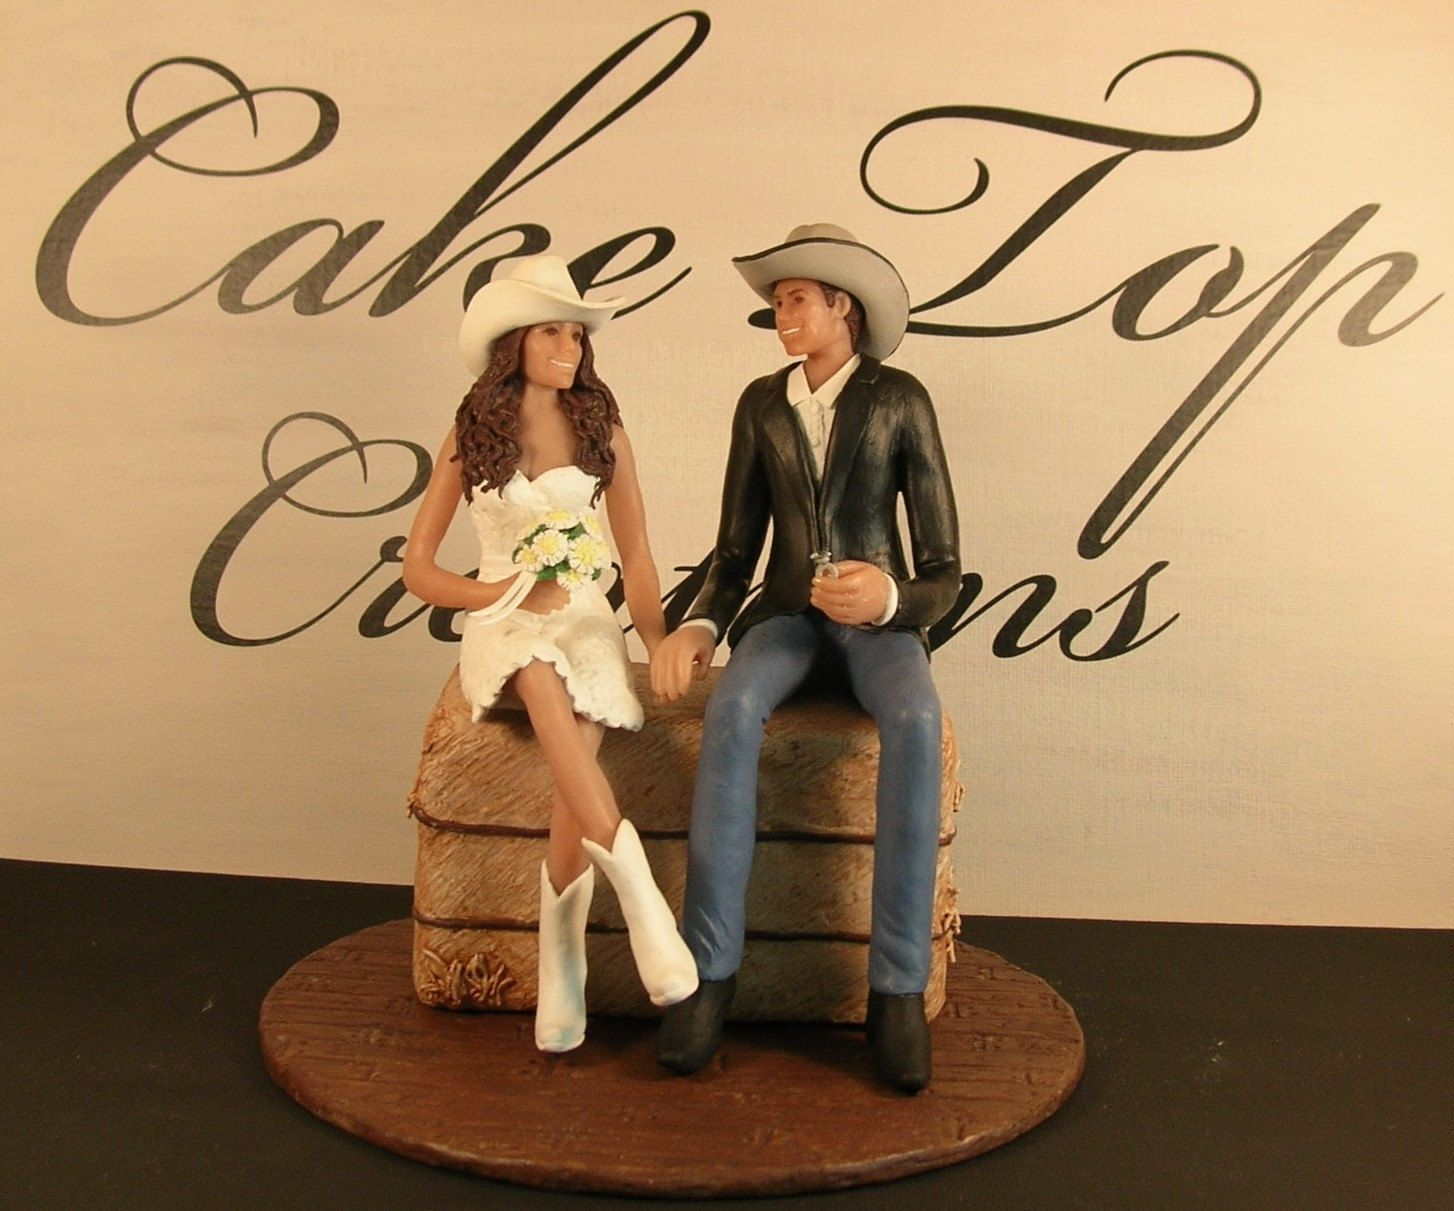 Western Wedding Cake Topper with couple in cowboy hats and boots ...